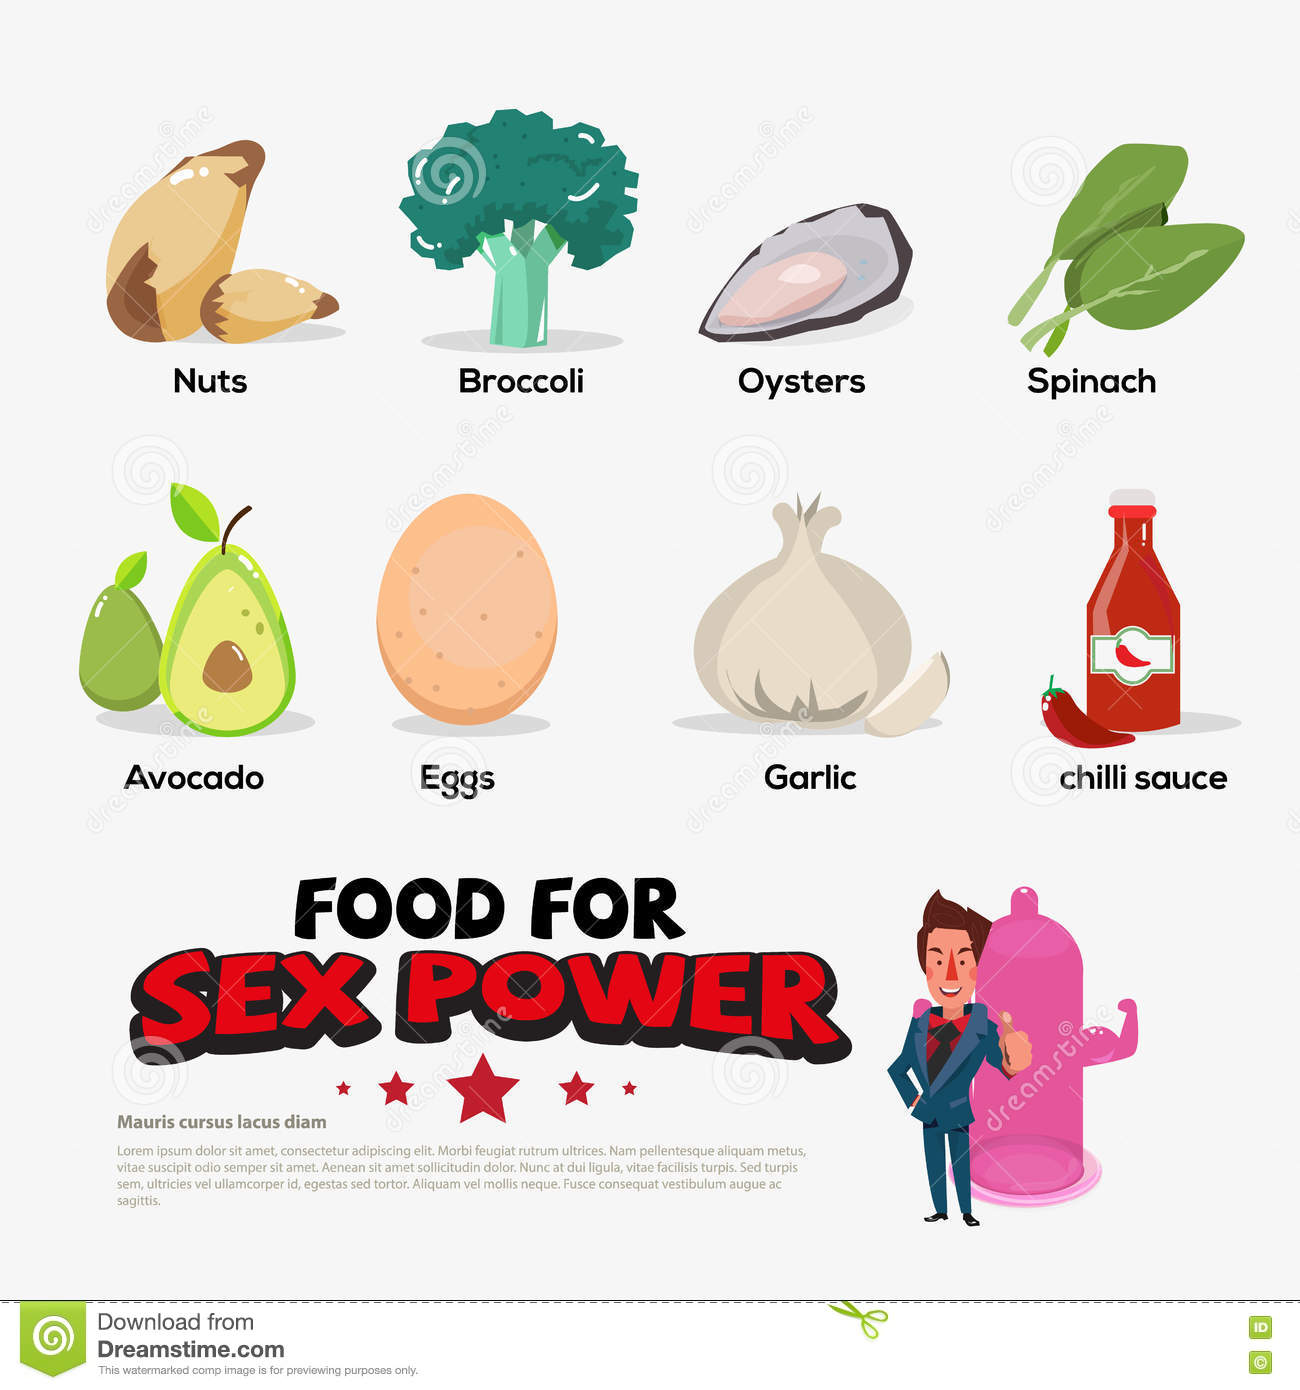 The best food for sex